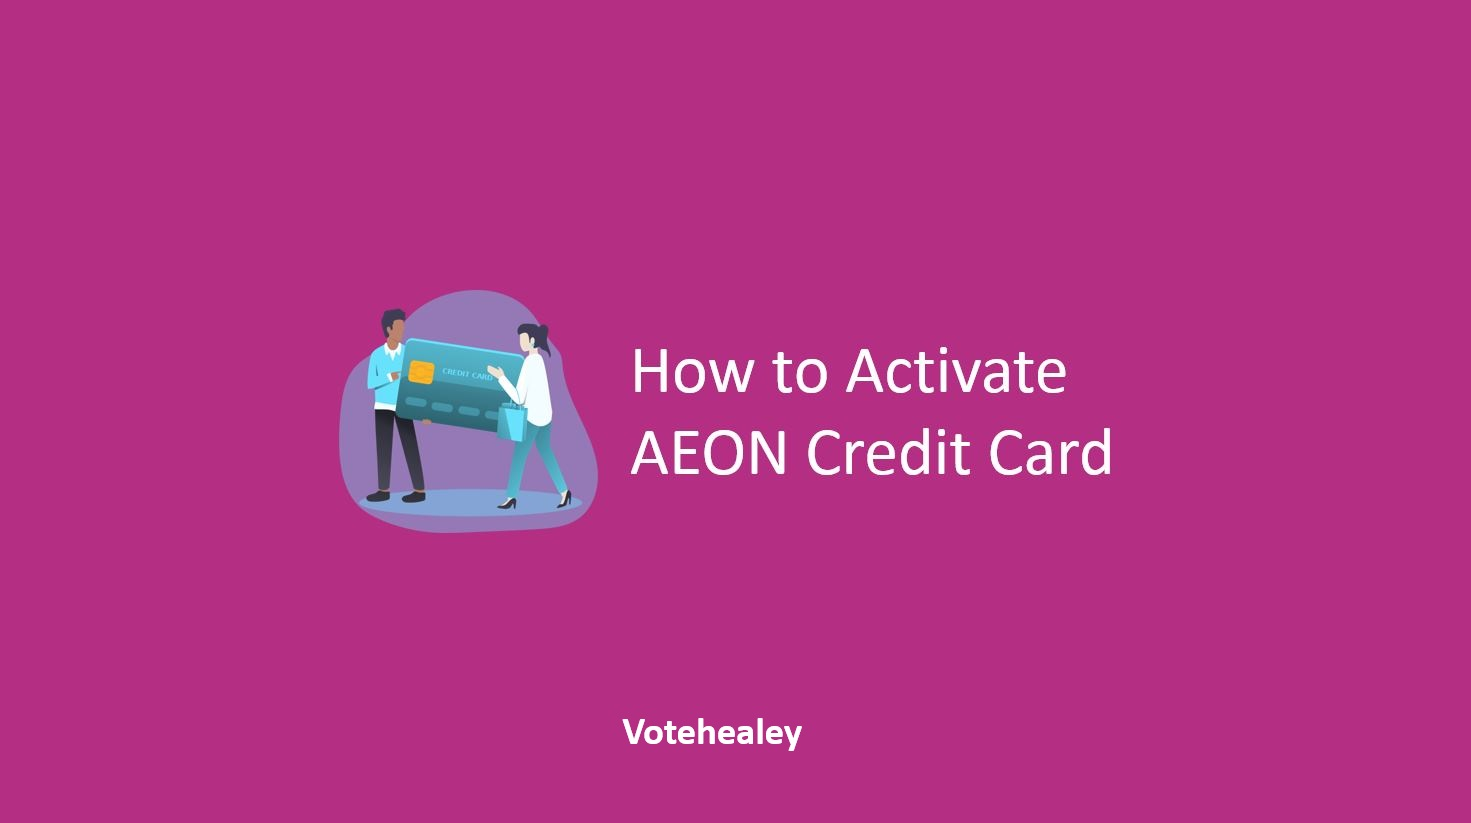 How to Activate AEON Credit Card